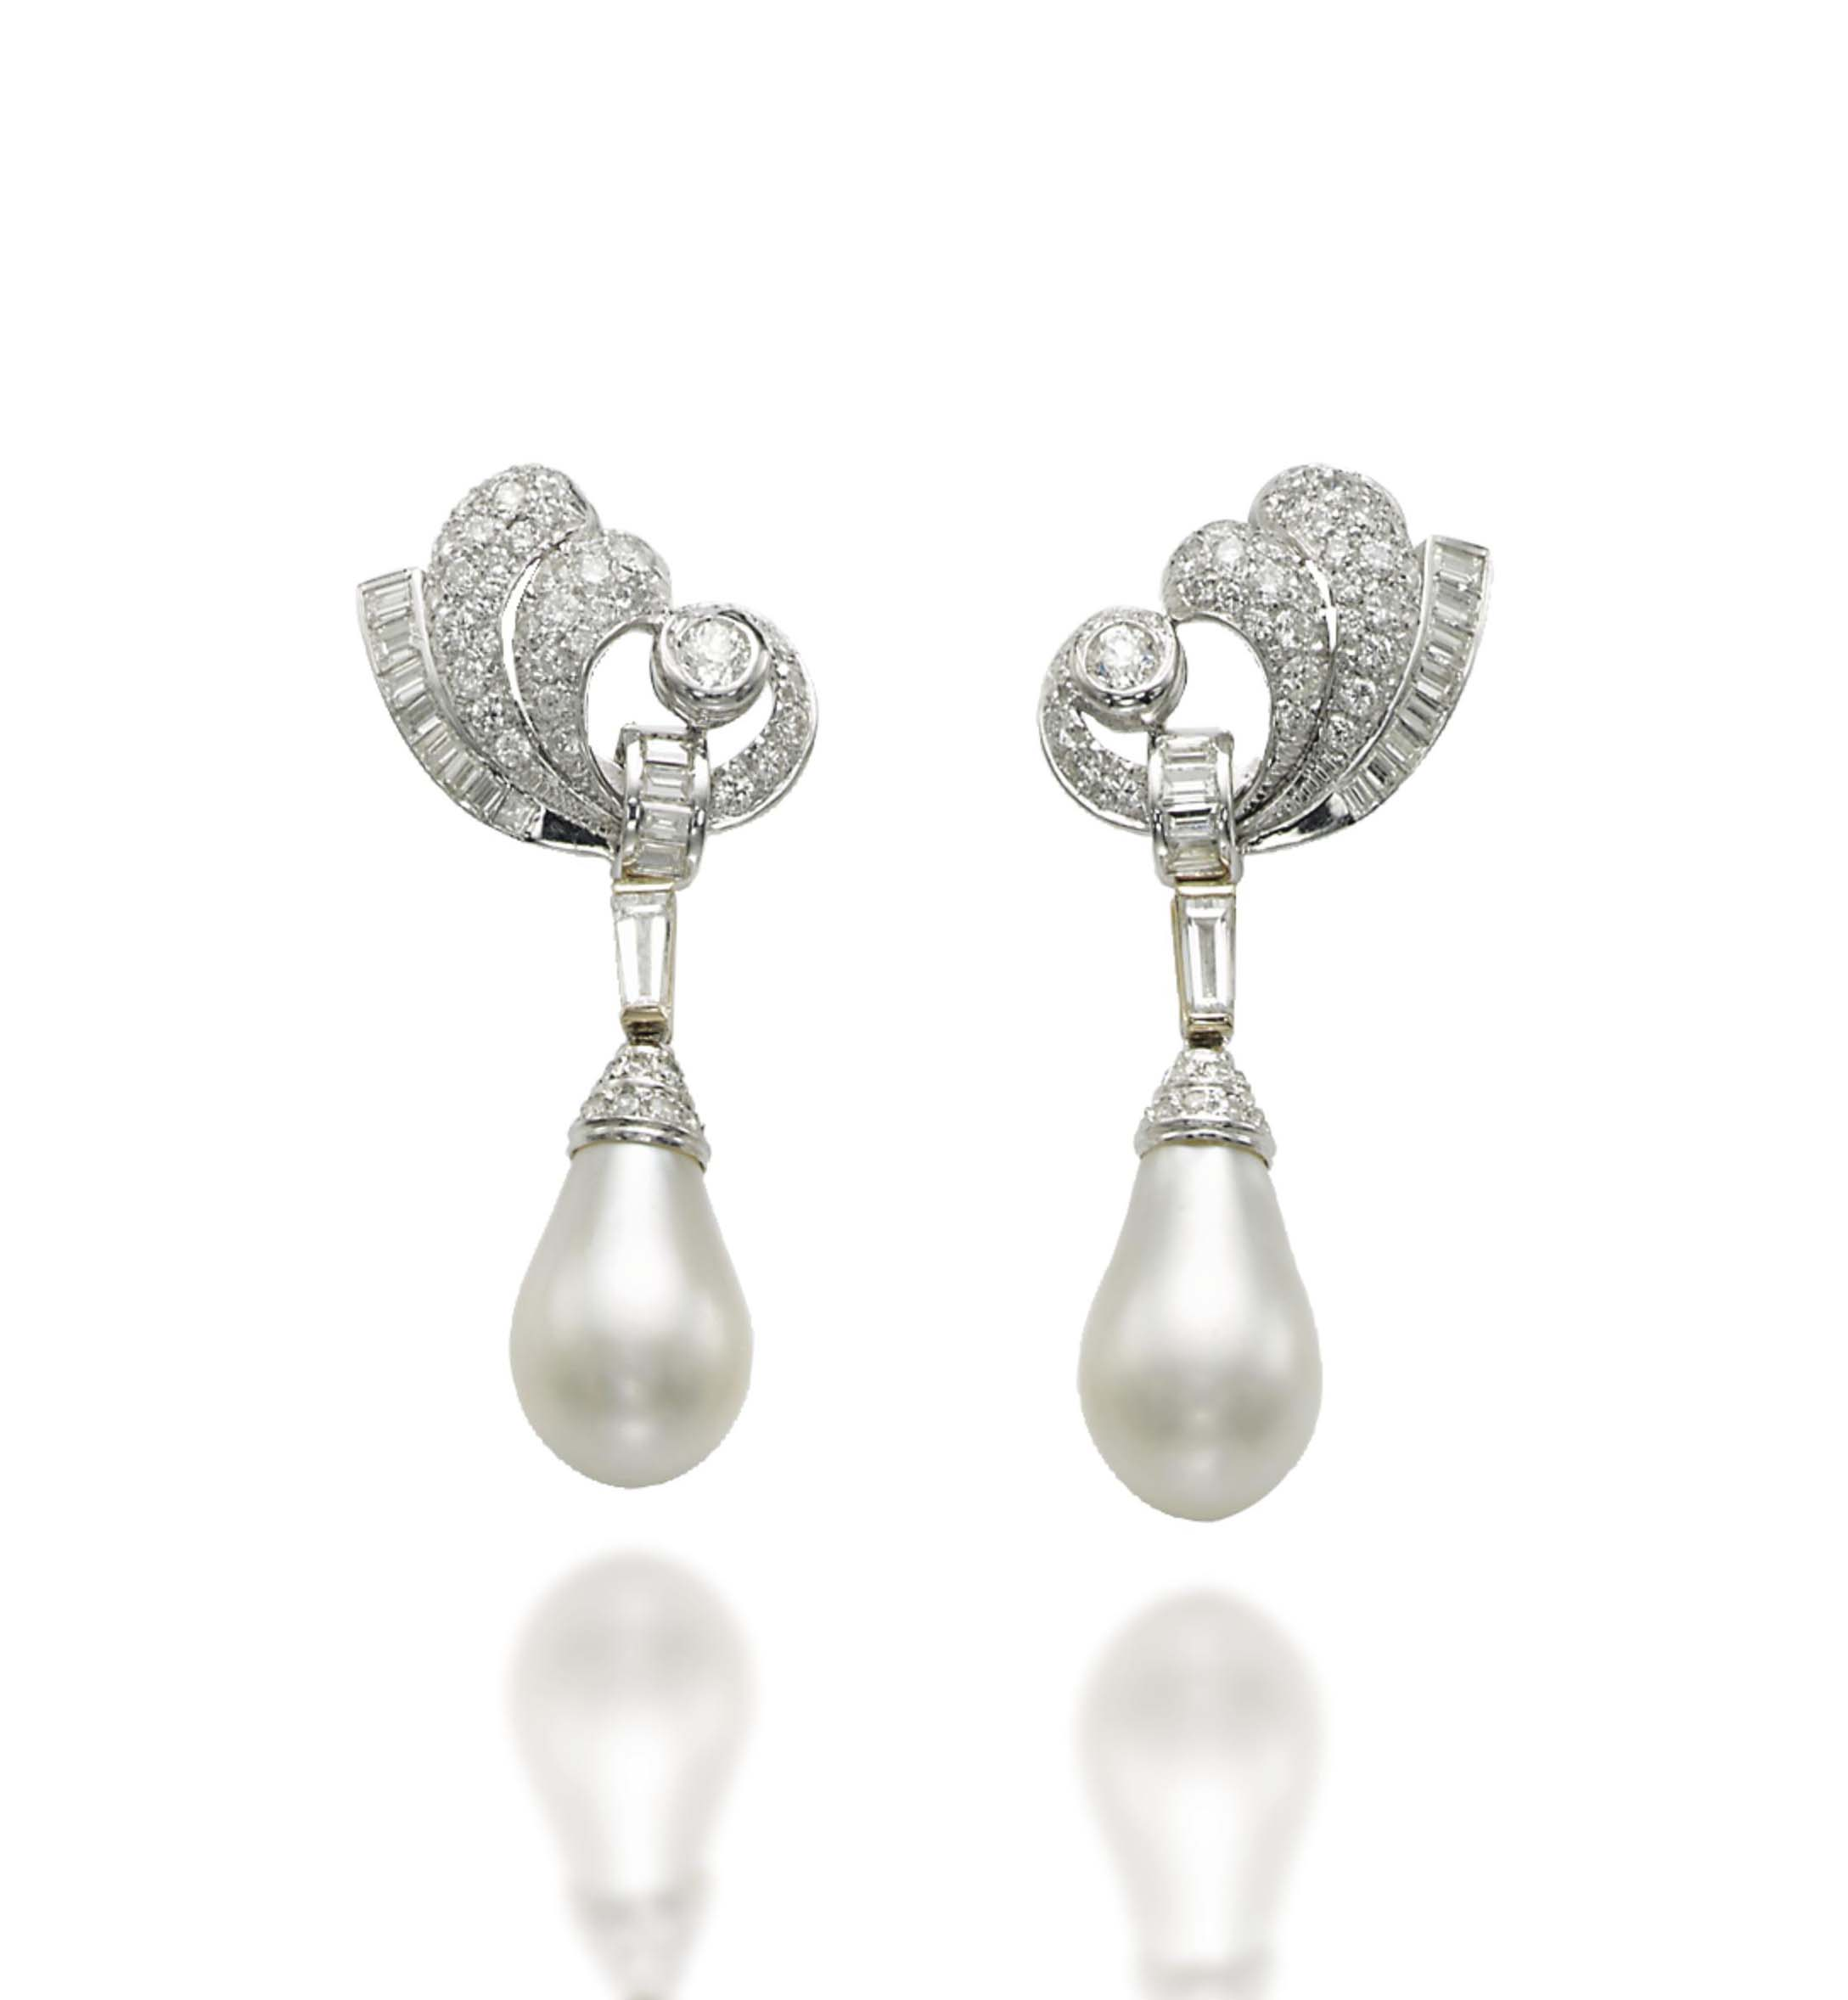 A PAIR OF NATURAL PEARL AND DIAMOND EAR PENDANTS, BY MASSONI